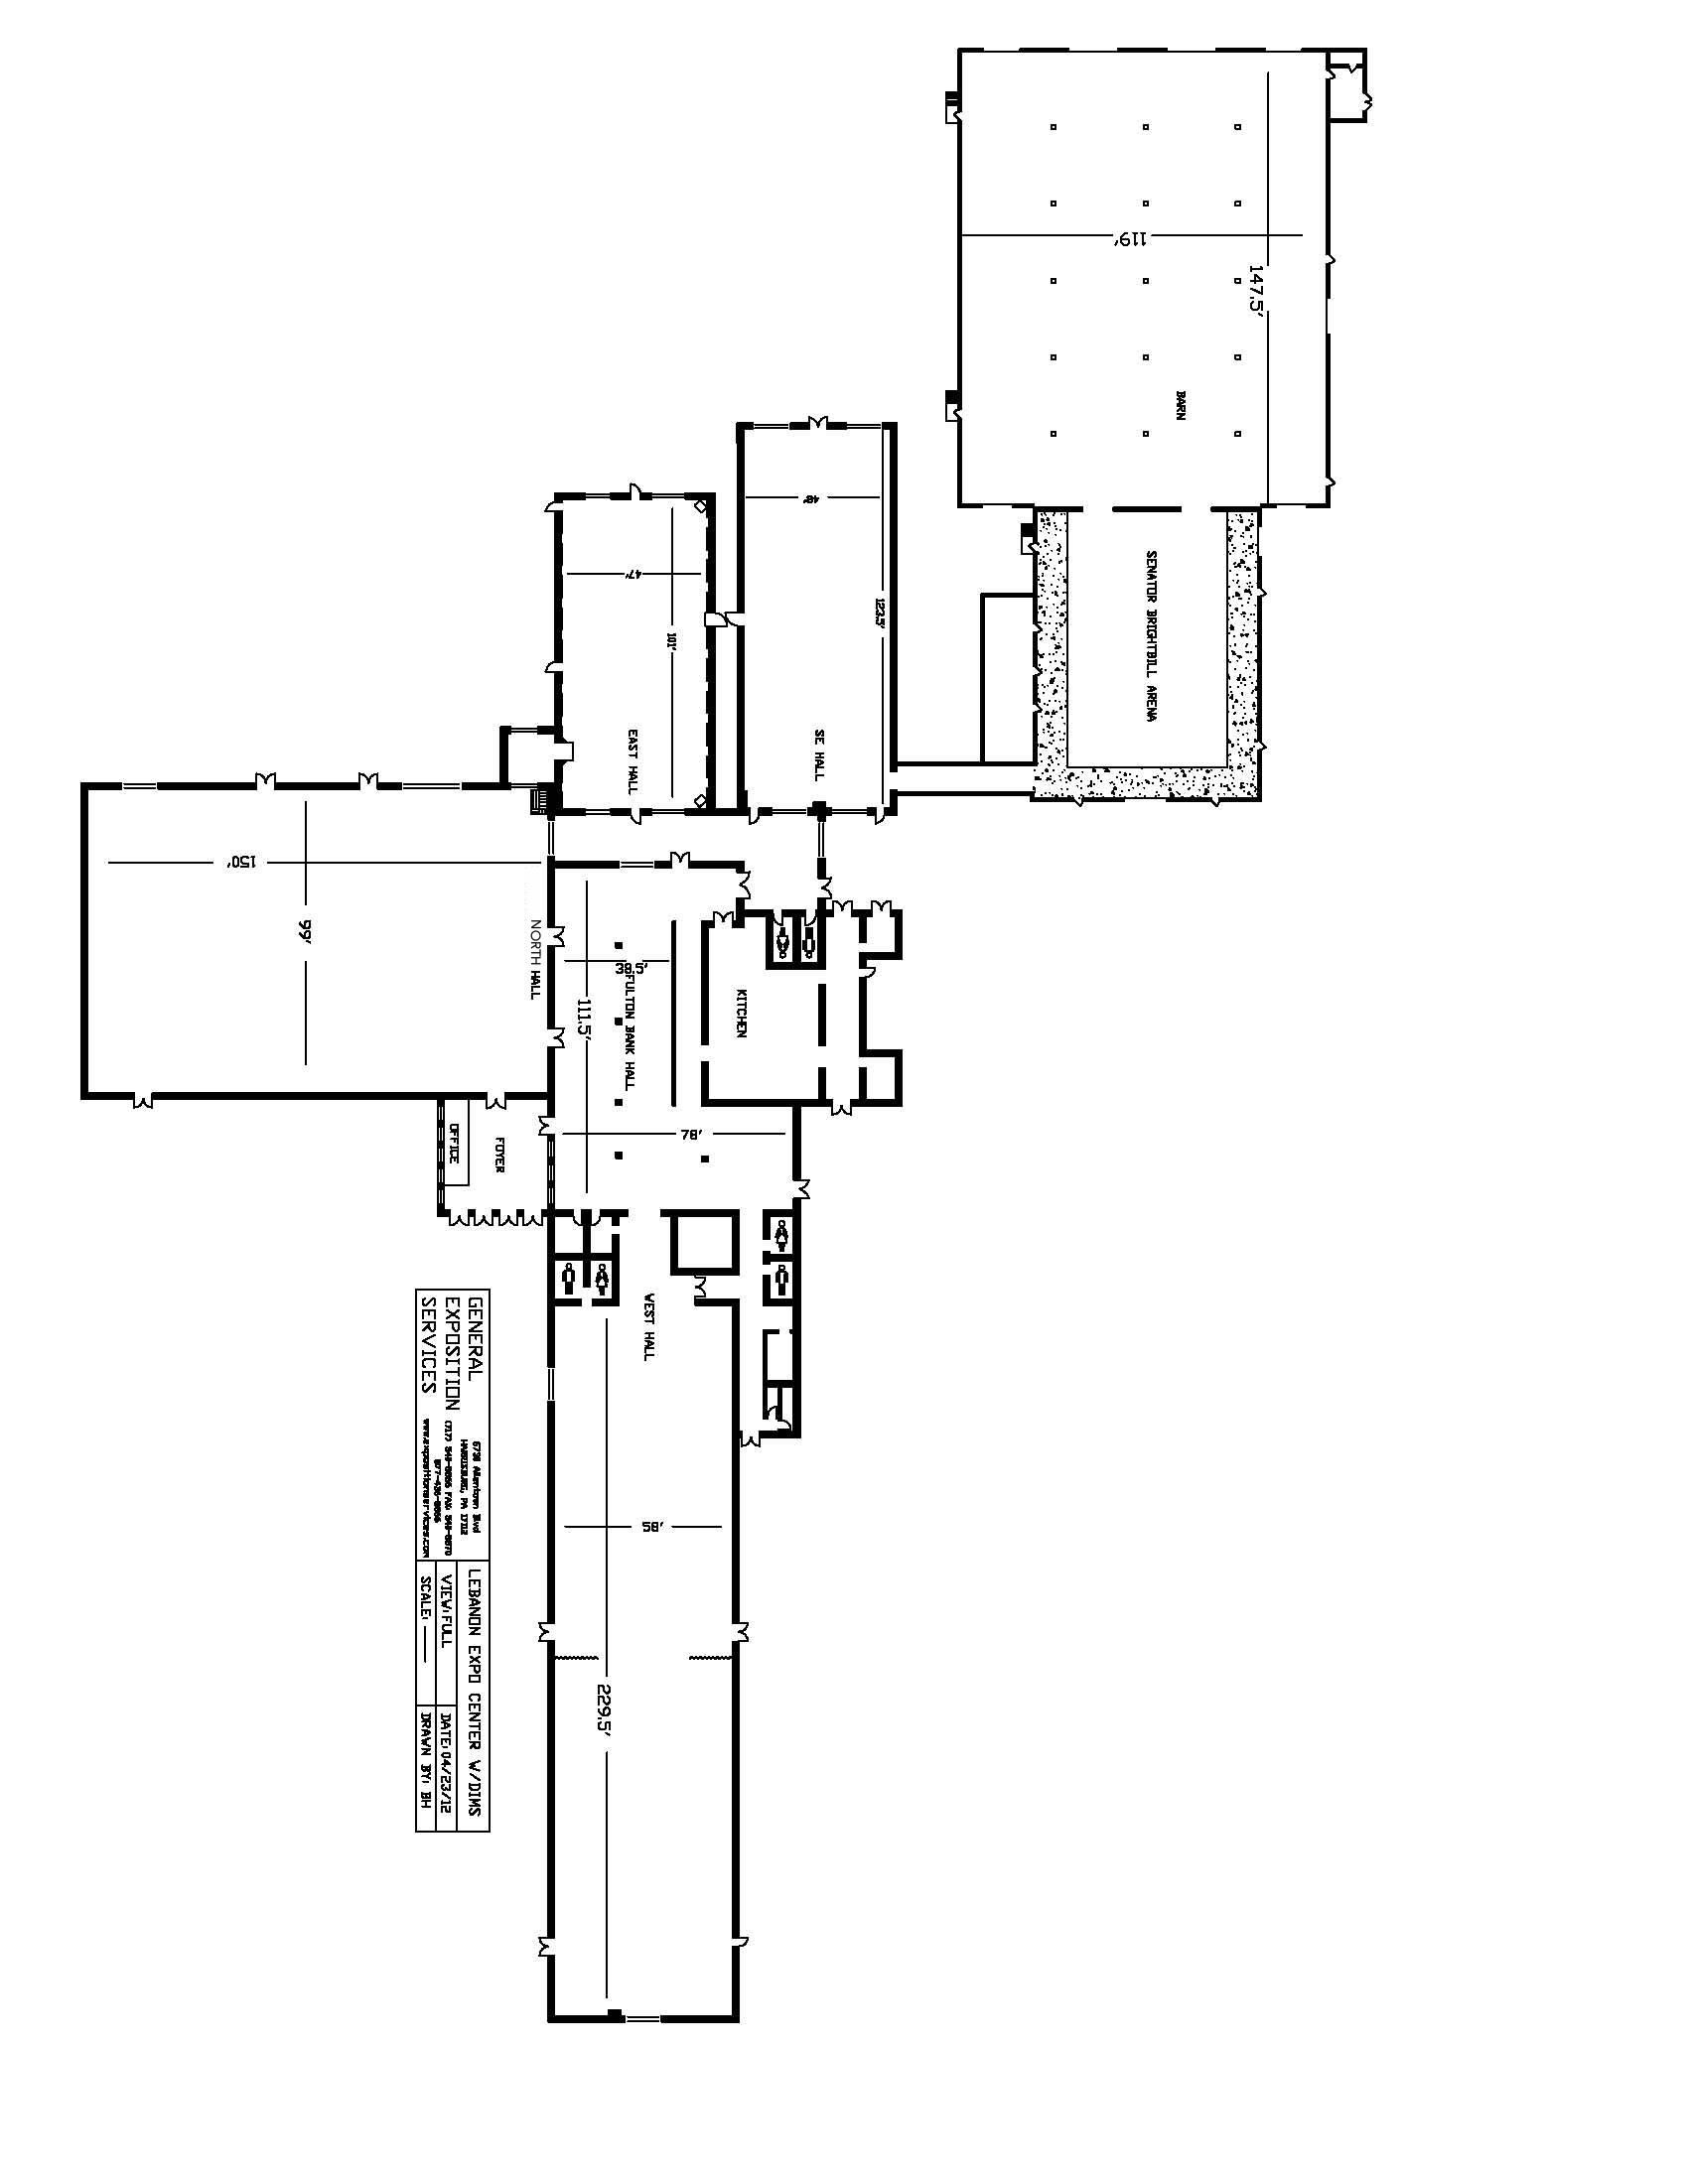 Enclosed Buildings - Complete Floor Plan